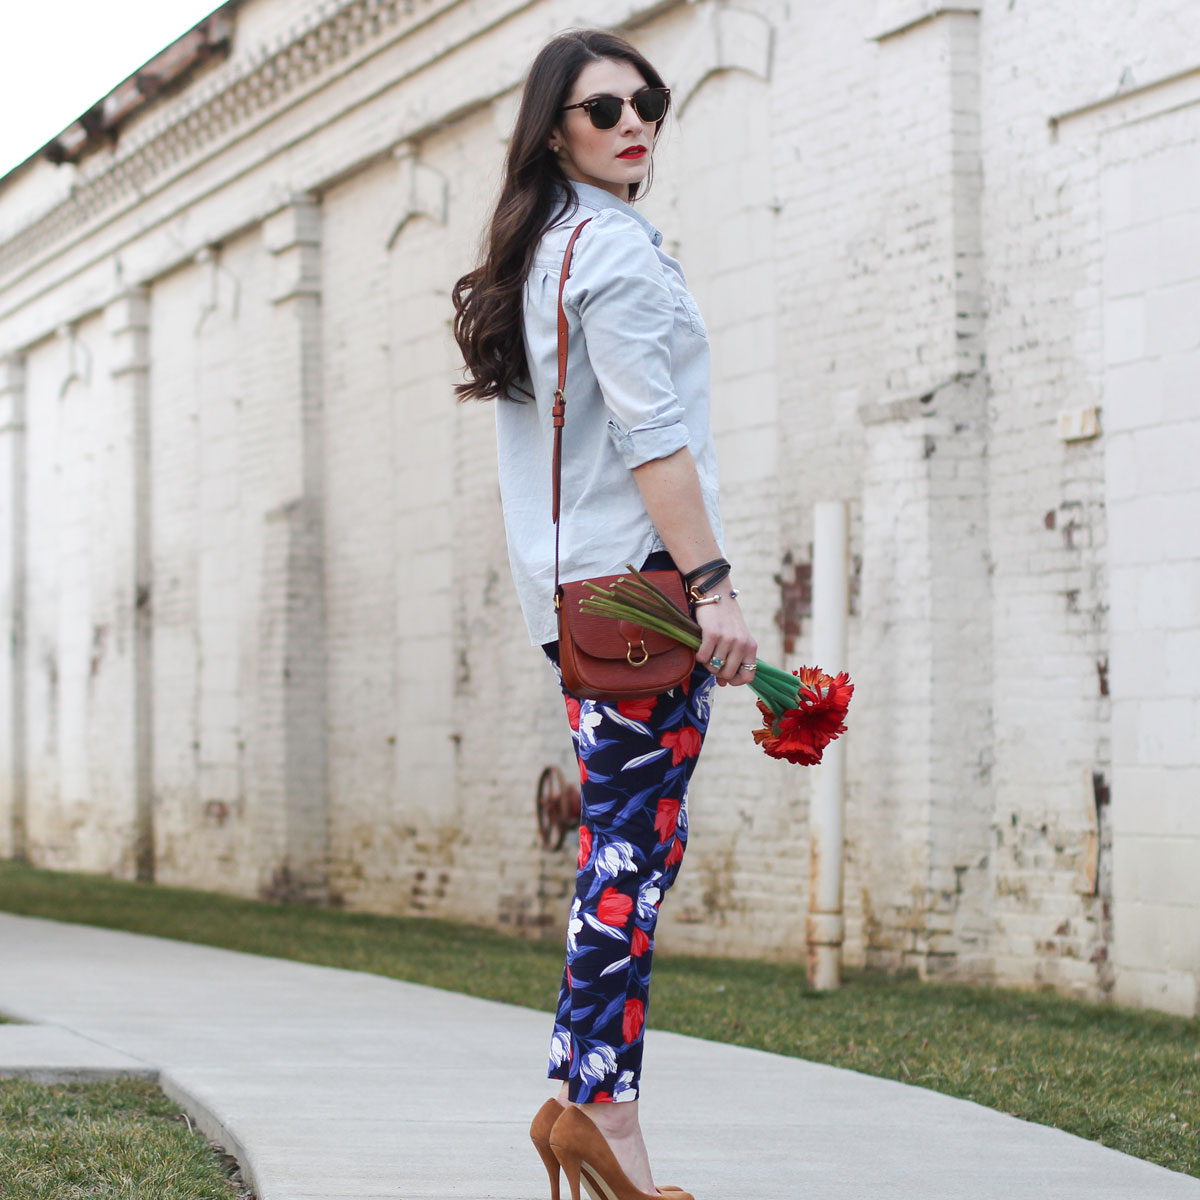 Old Navy Pixie Pants, Floral Pants, Casual Work Outfit, Denim Shirt, Vintage Louis Vuitton Handbag, Summer Fashion, Wear to Work Fashion, Fashion Blogger